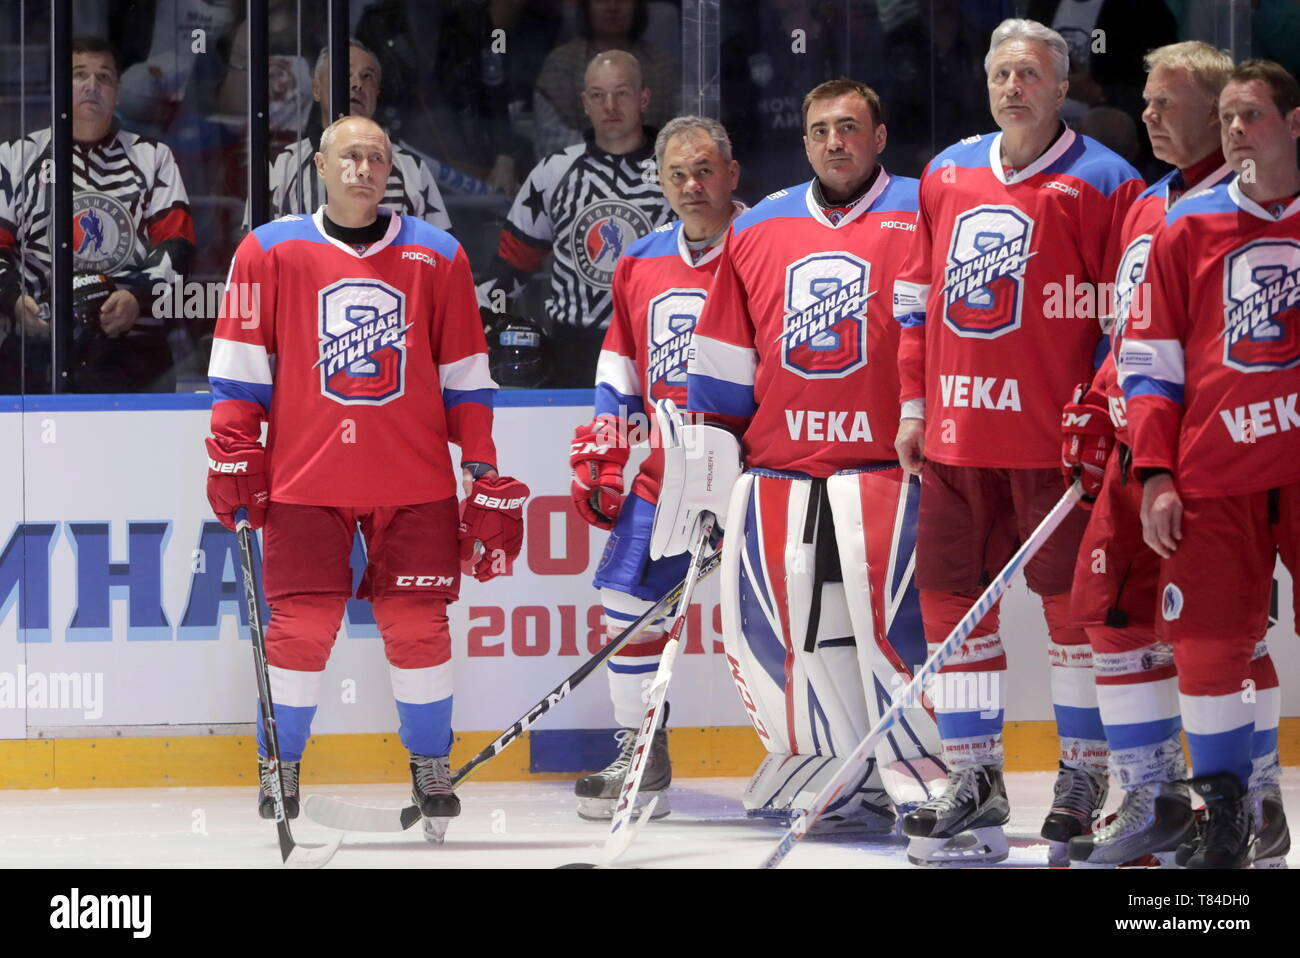 Sochi, Russia. 10th May, 2019. SOCHI, RUSSIA - MAY 10, 2019: Russia's President Vladimir Putin, Russia's Defence Minister Sergei Shoigu, Tula Region Governor Alexei Dyumin, Night Hockey League President Alexander Yakushev, Russian State Duma member Vyacheslav Fetisov, and World Legends Hockey League President Pavel Bure (L-R) take part in a Night Hockey League gala match at the Bolshoi Ice Palace. Mikhail Metzel/TASS Credit: ITAR-TASS News Agency/Alamy Live News - Stock Image